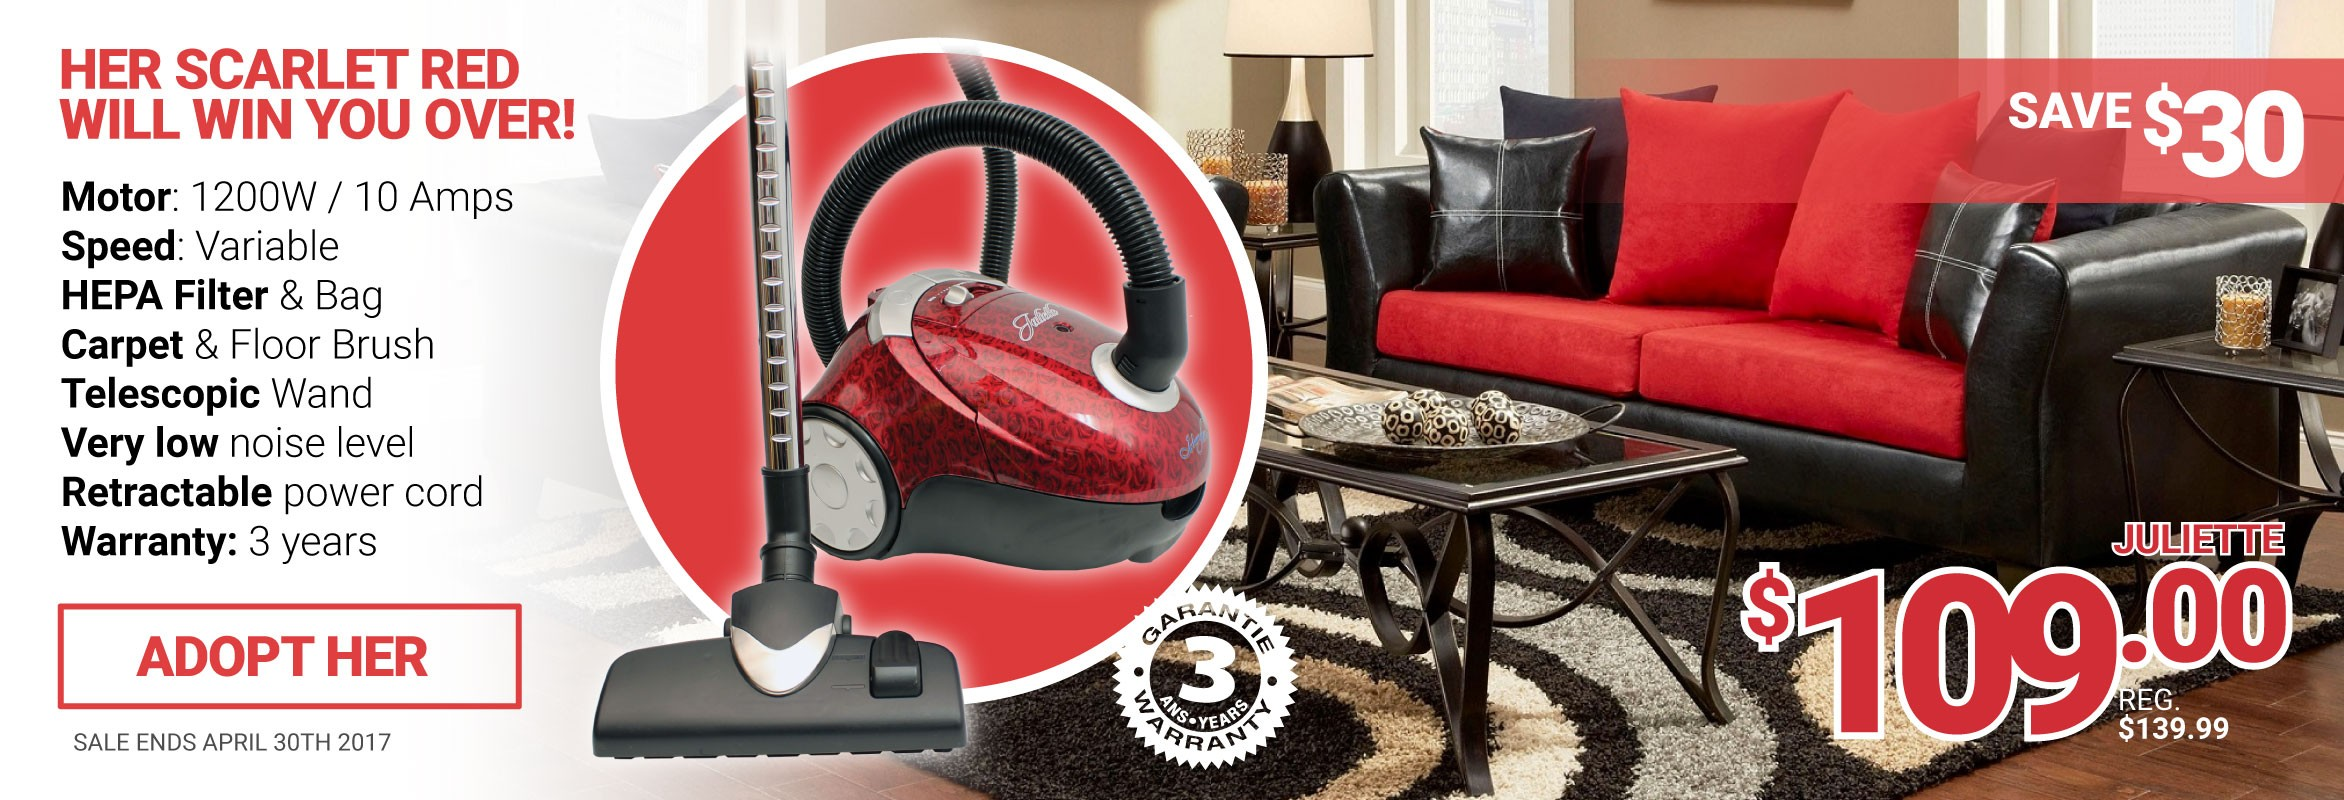 Johnny Vac - JULIETTE - Save $30 on the Juliette.